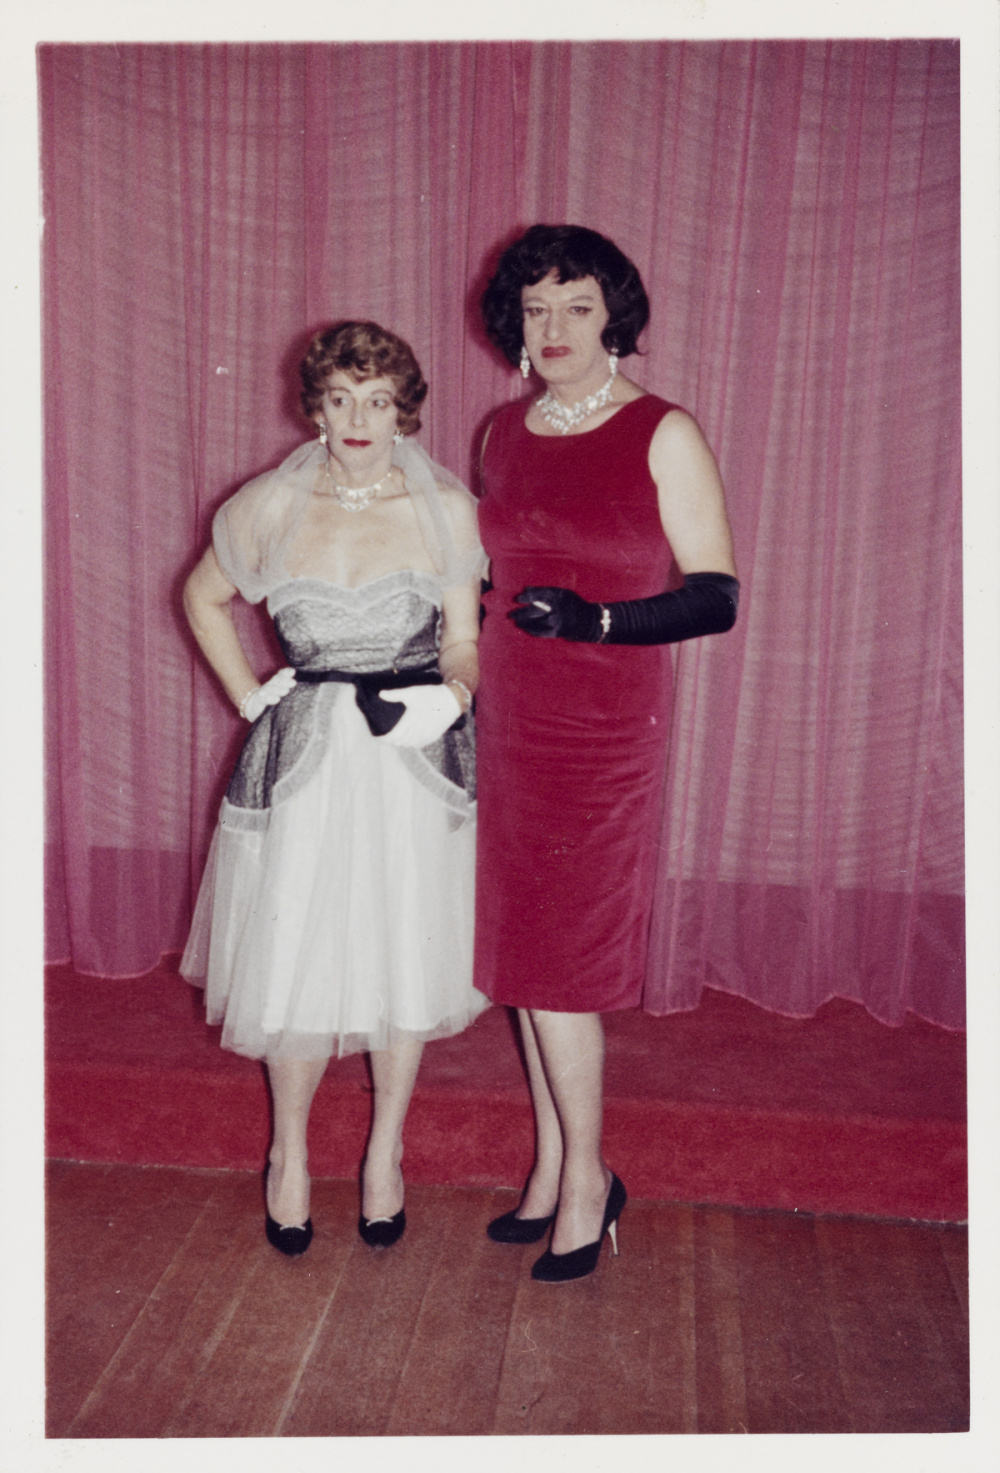 Unknown American, Anita and Gloria Standing by the Stage, October 1961. Chromogenic Print, 12.1 x 8.3 cm. Collection of the Art Gallery of Ontario. Purchase, with funds generously donated by Martha LA McCain, 2015. © Art Gallery of Ontario